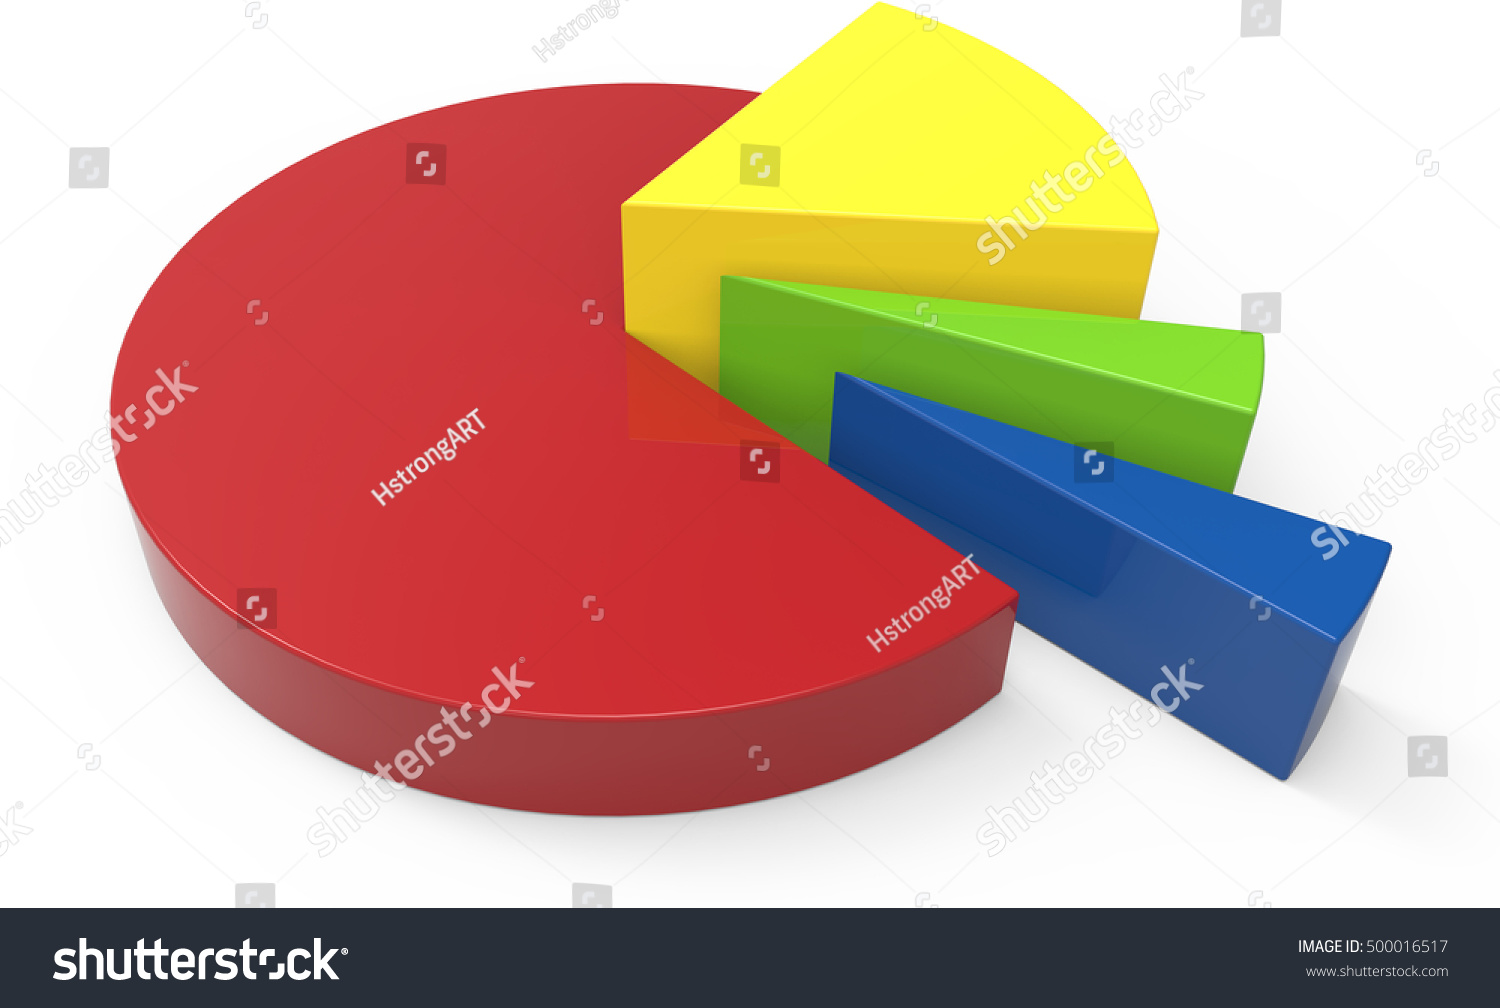 3d rendering colorful pie chart model stock illustration 500016517 3d rendering colorful pie chart model isolated white background geenschuldenfo Image collections